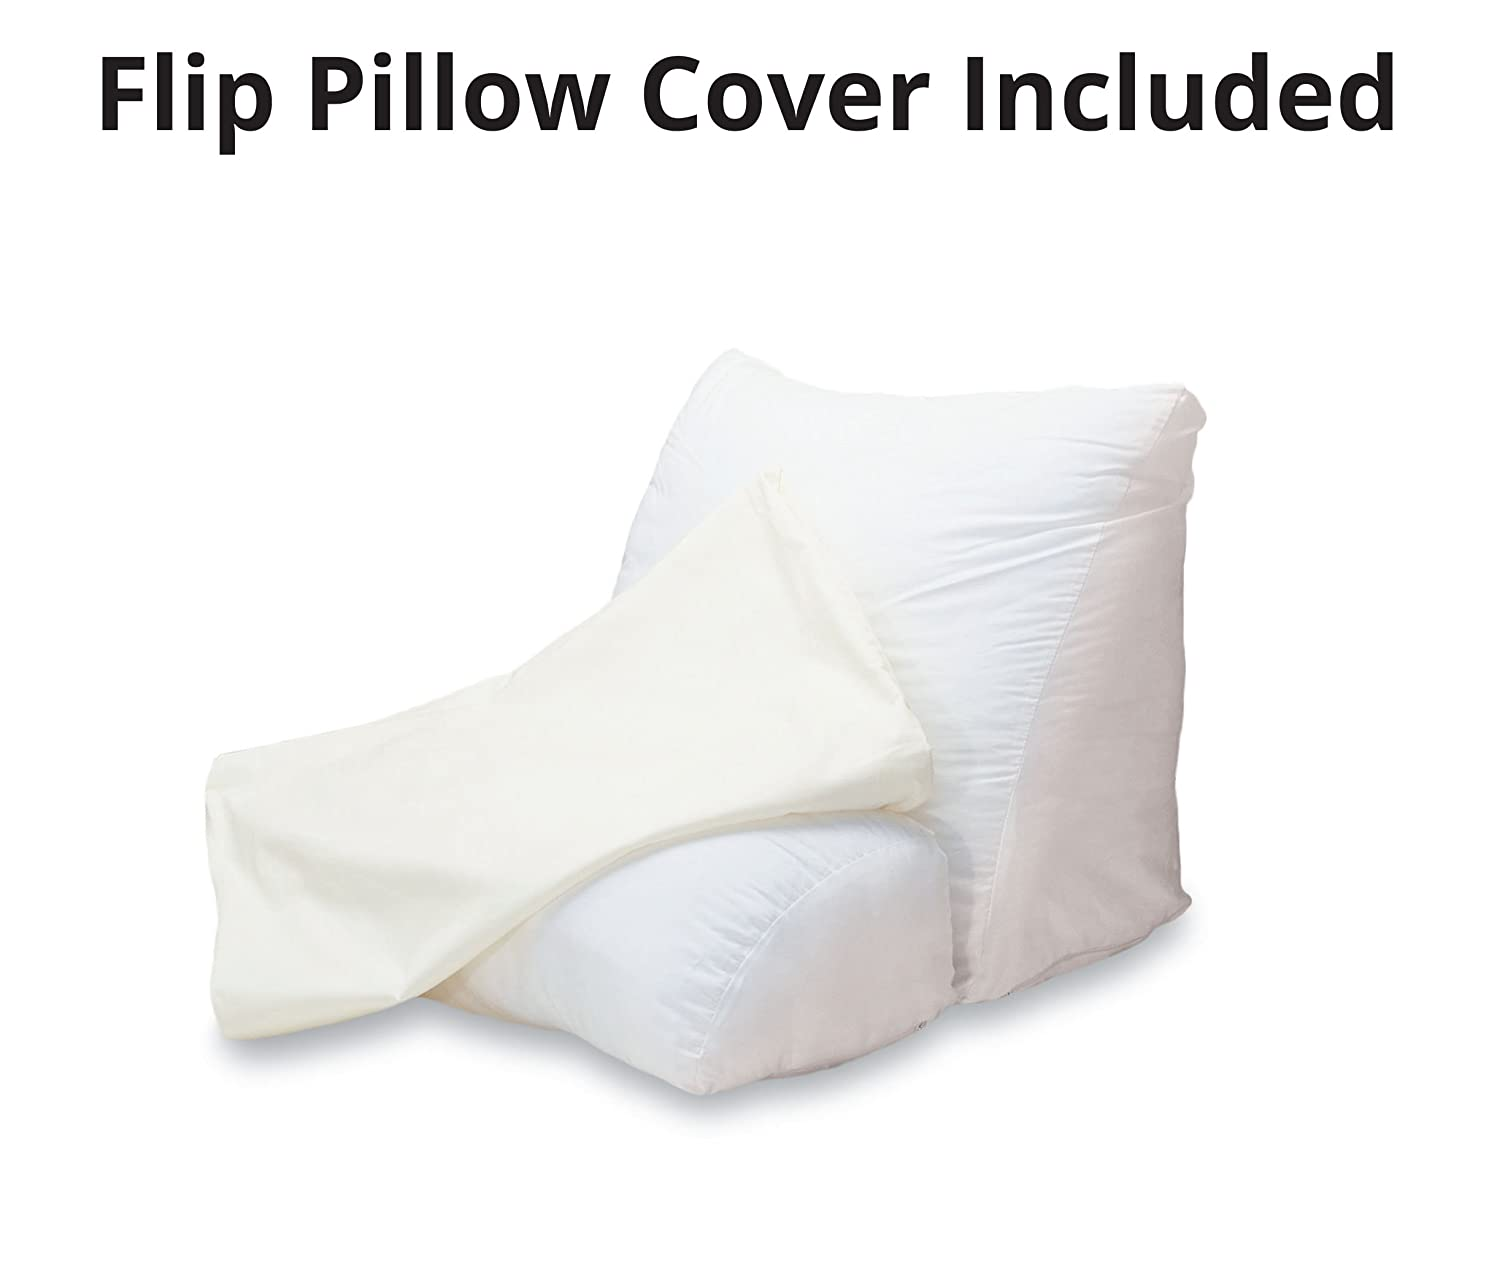 over hover for image uts case click with to zoom scl fingerhut flip va full product contour pillow